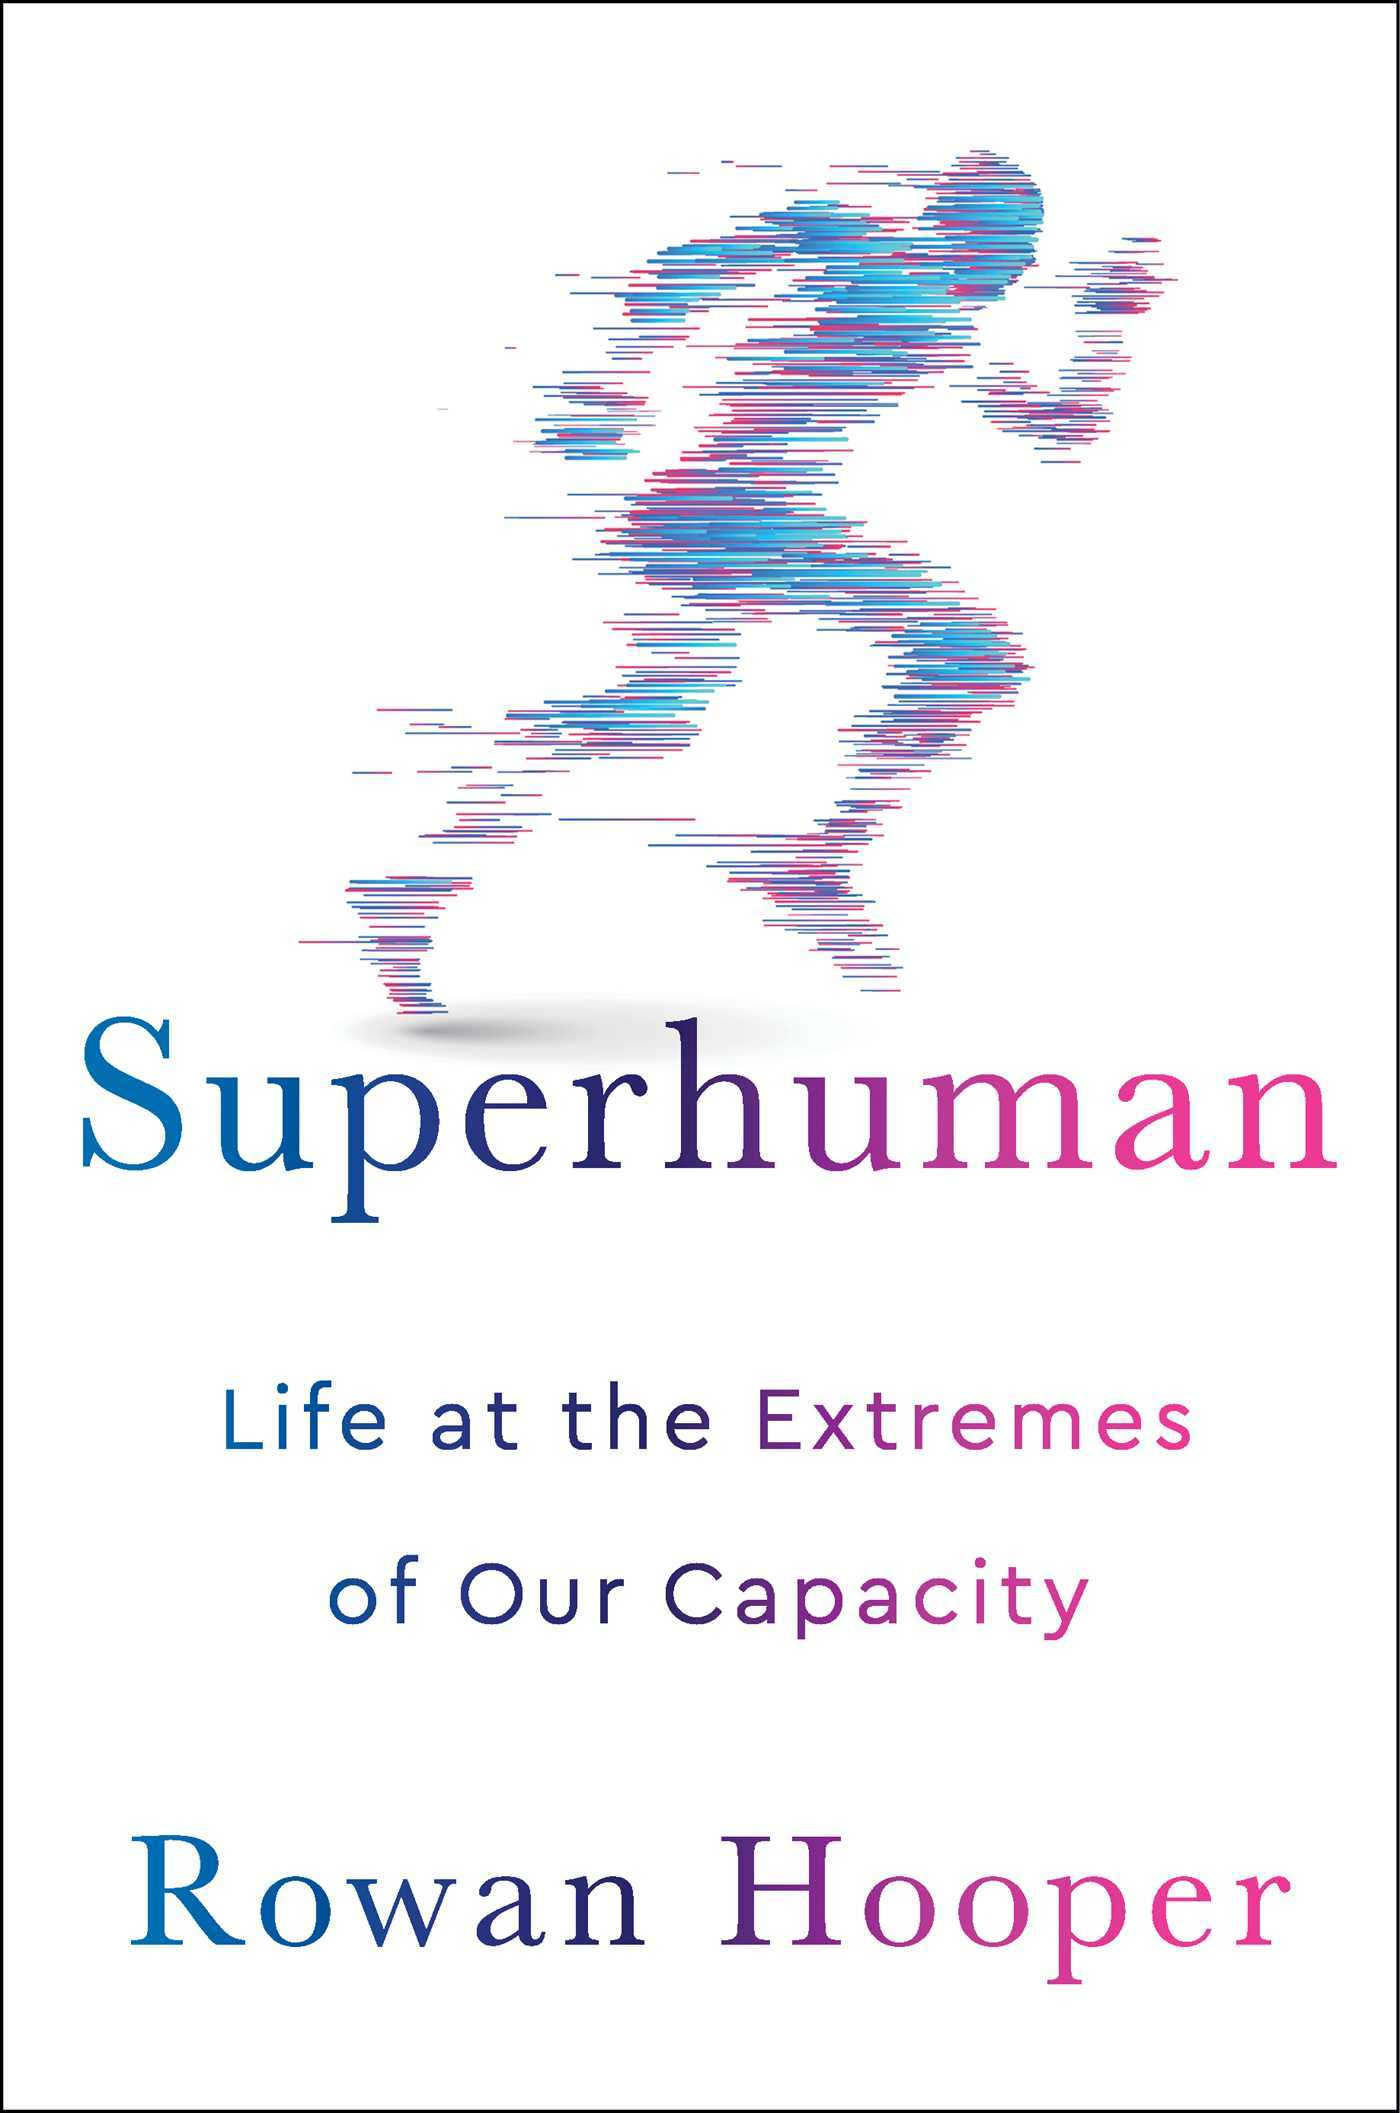 Superhuman Life at the Extremes of Our Capacity